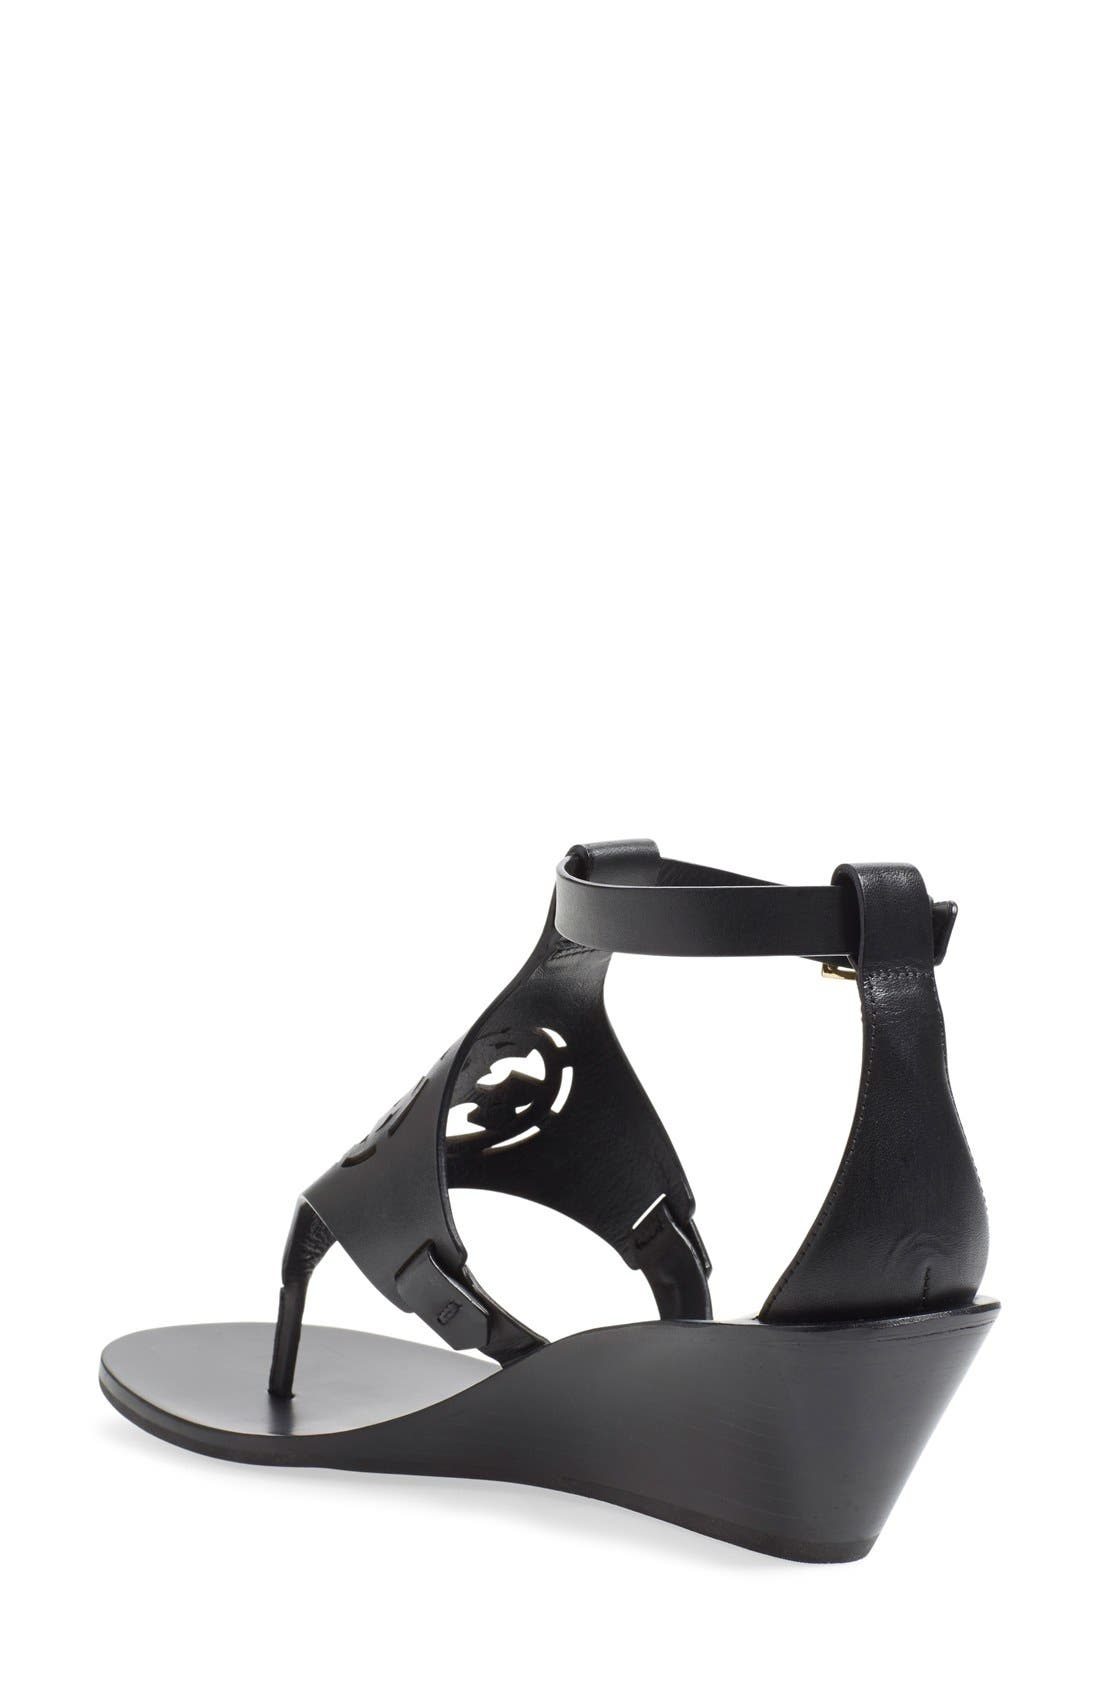 'Zoey' Wedge Sandal,                             Alternate thumbnail 4, color,                             001